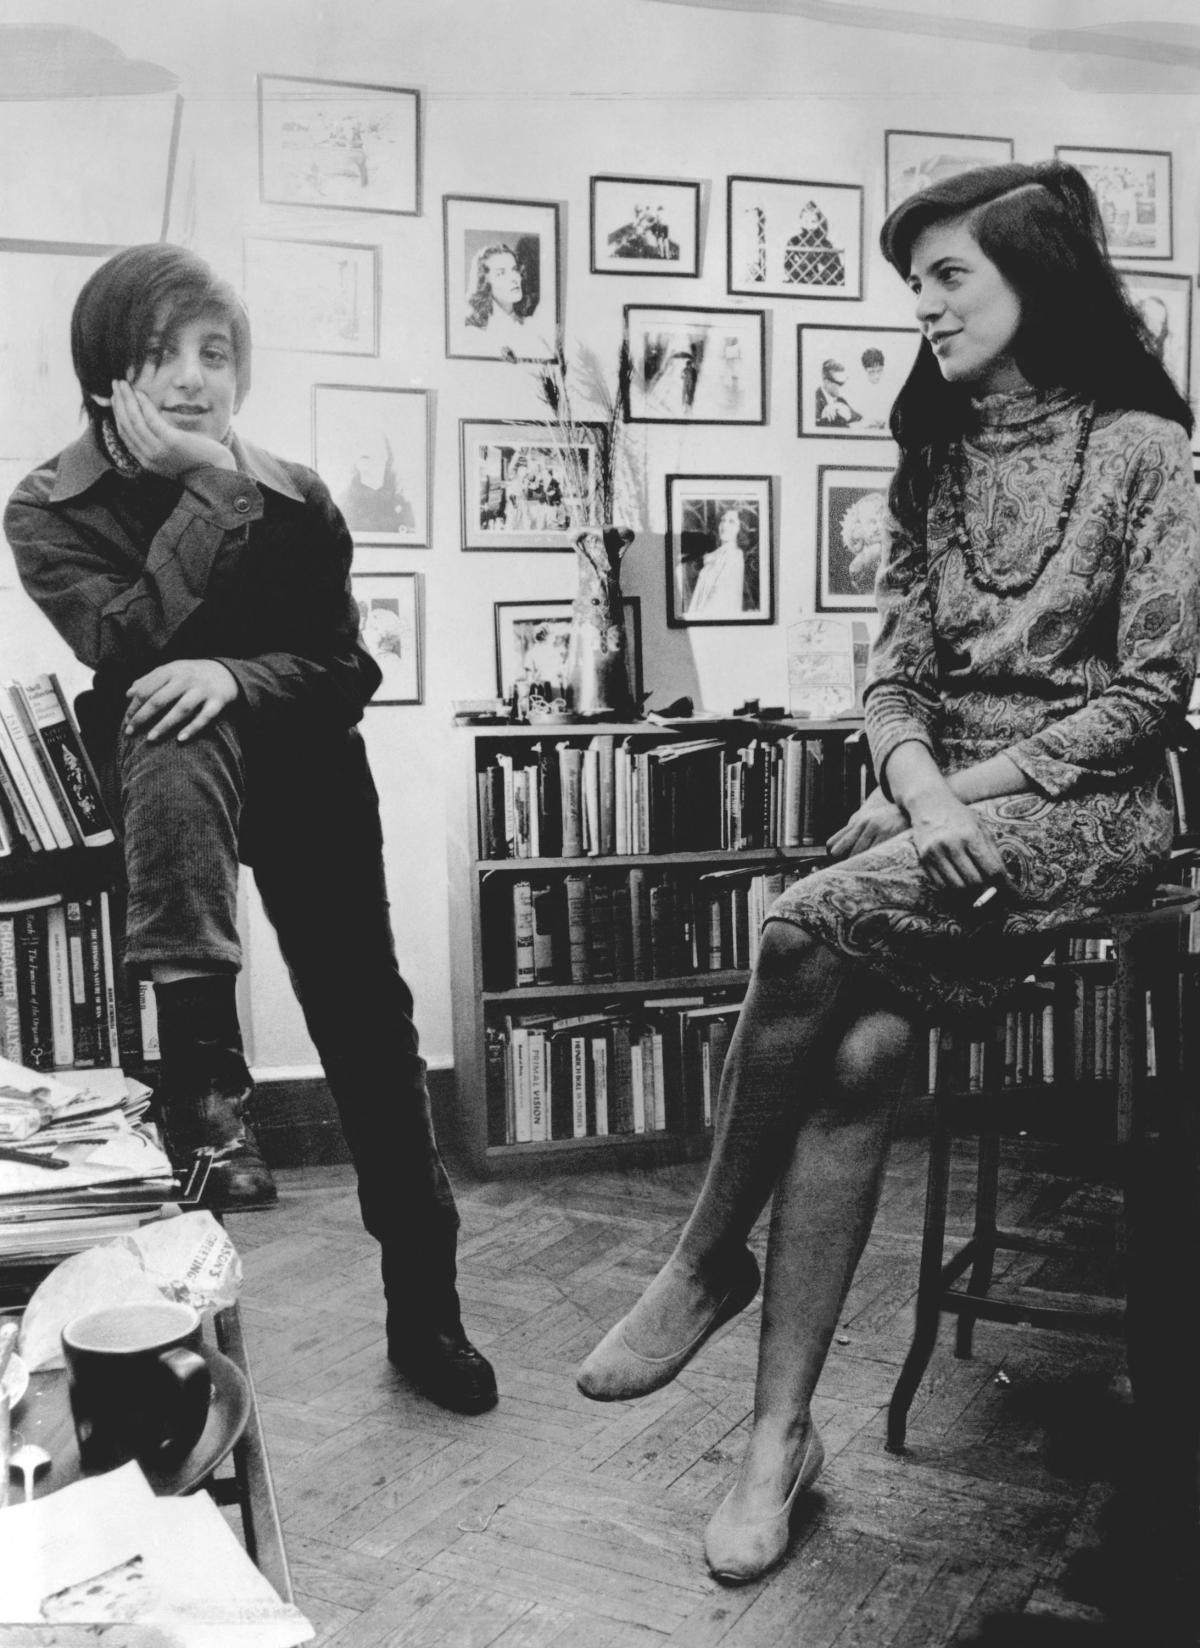 Sontag, seated on a stool, looks at her young son while he rests his hand on his chin